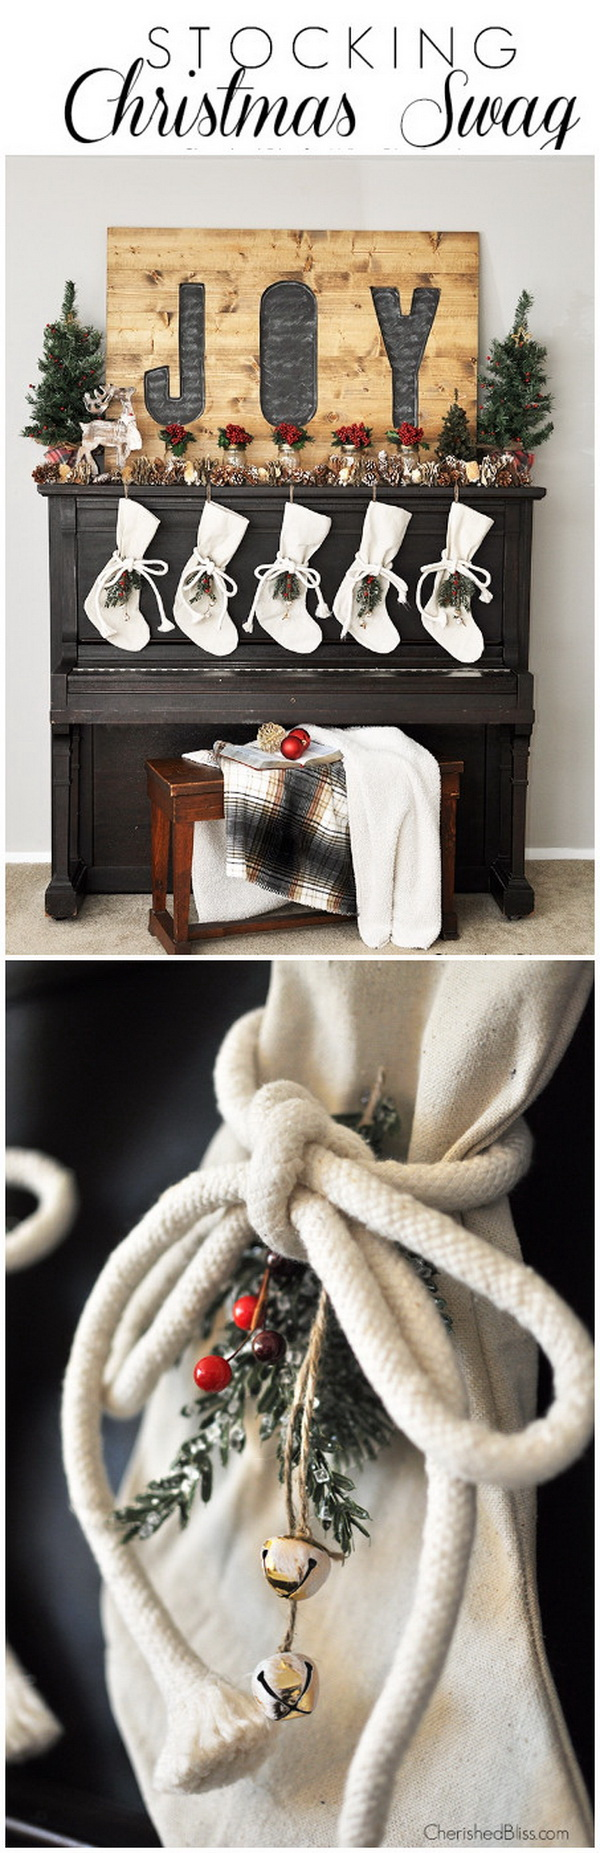 Stocking Christmas Swag. Add each of the stockings with these drop cloth stockings this year and it was the perfect addition to your mantel decoration this Christmas season.